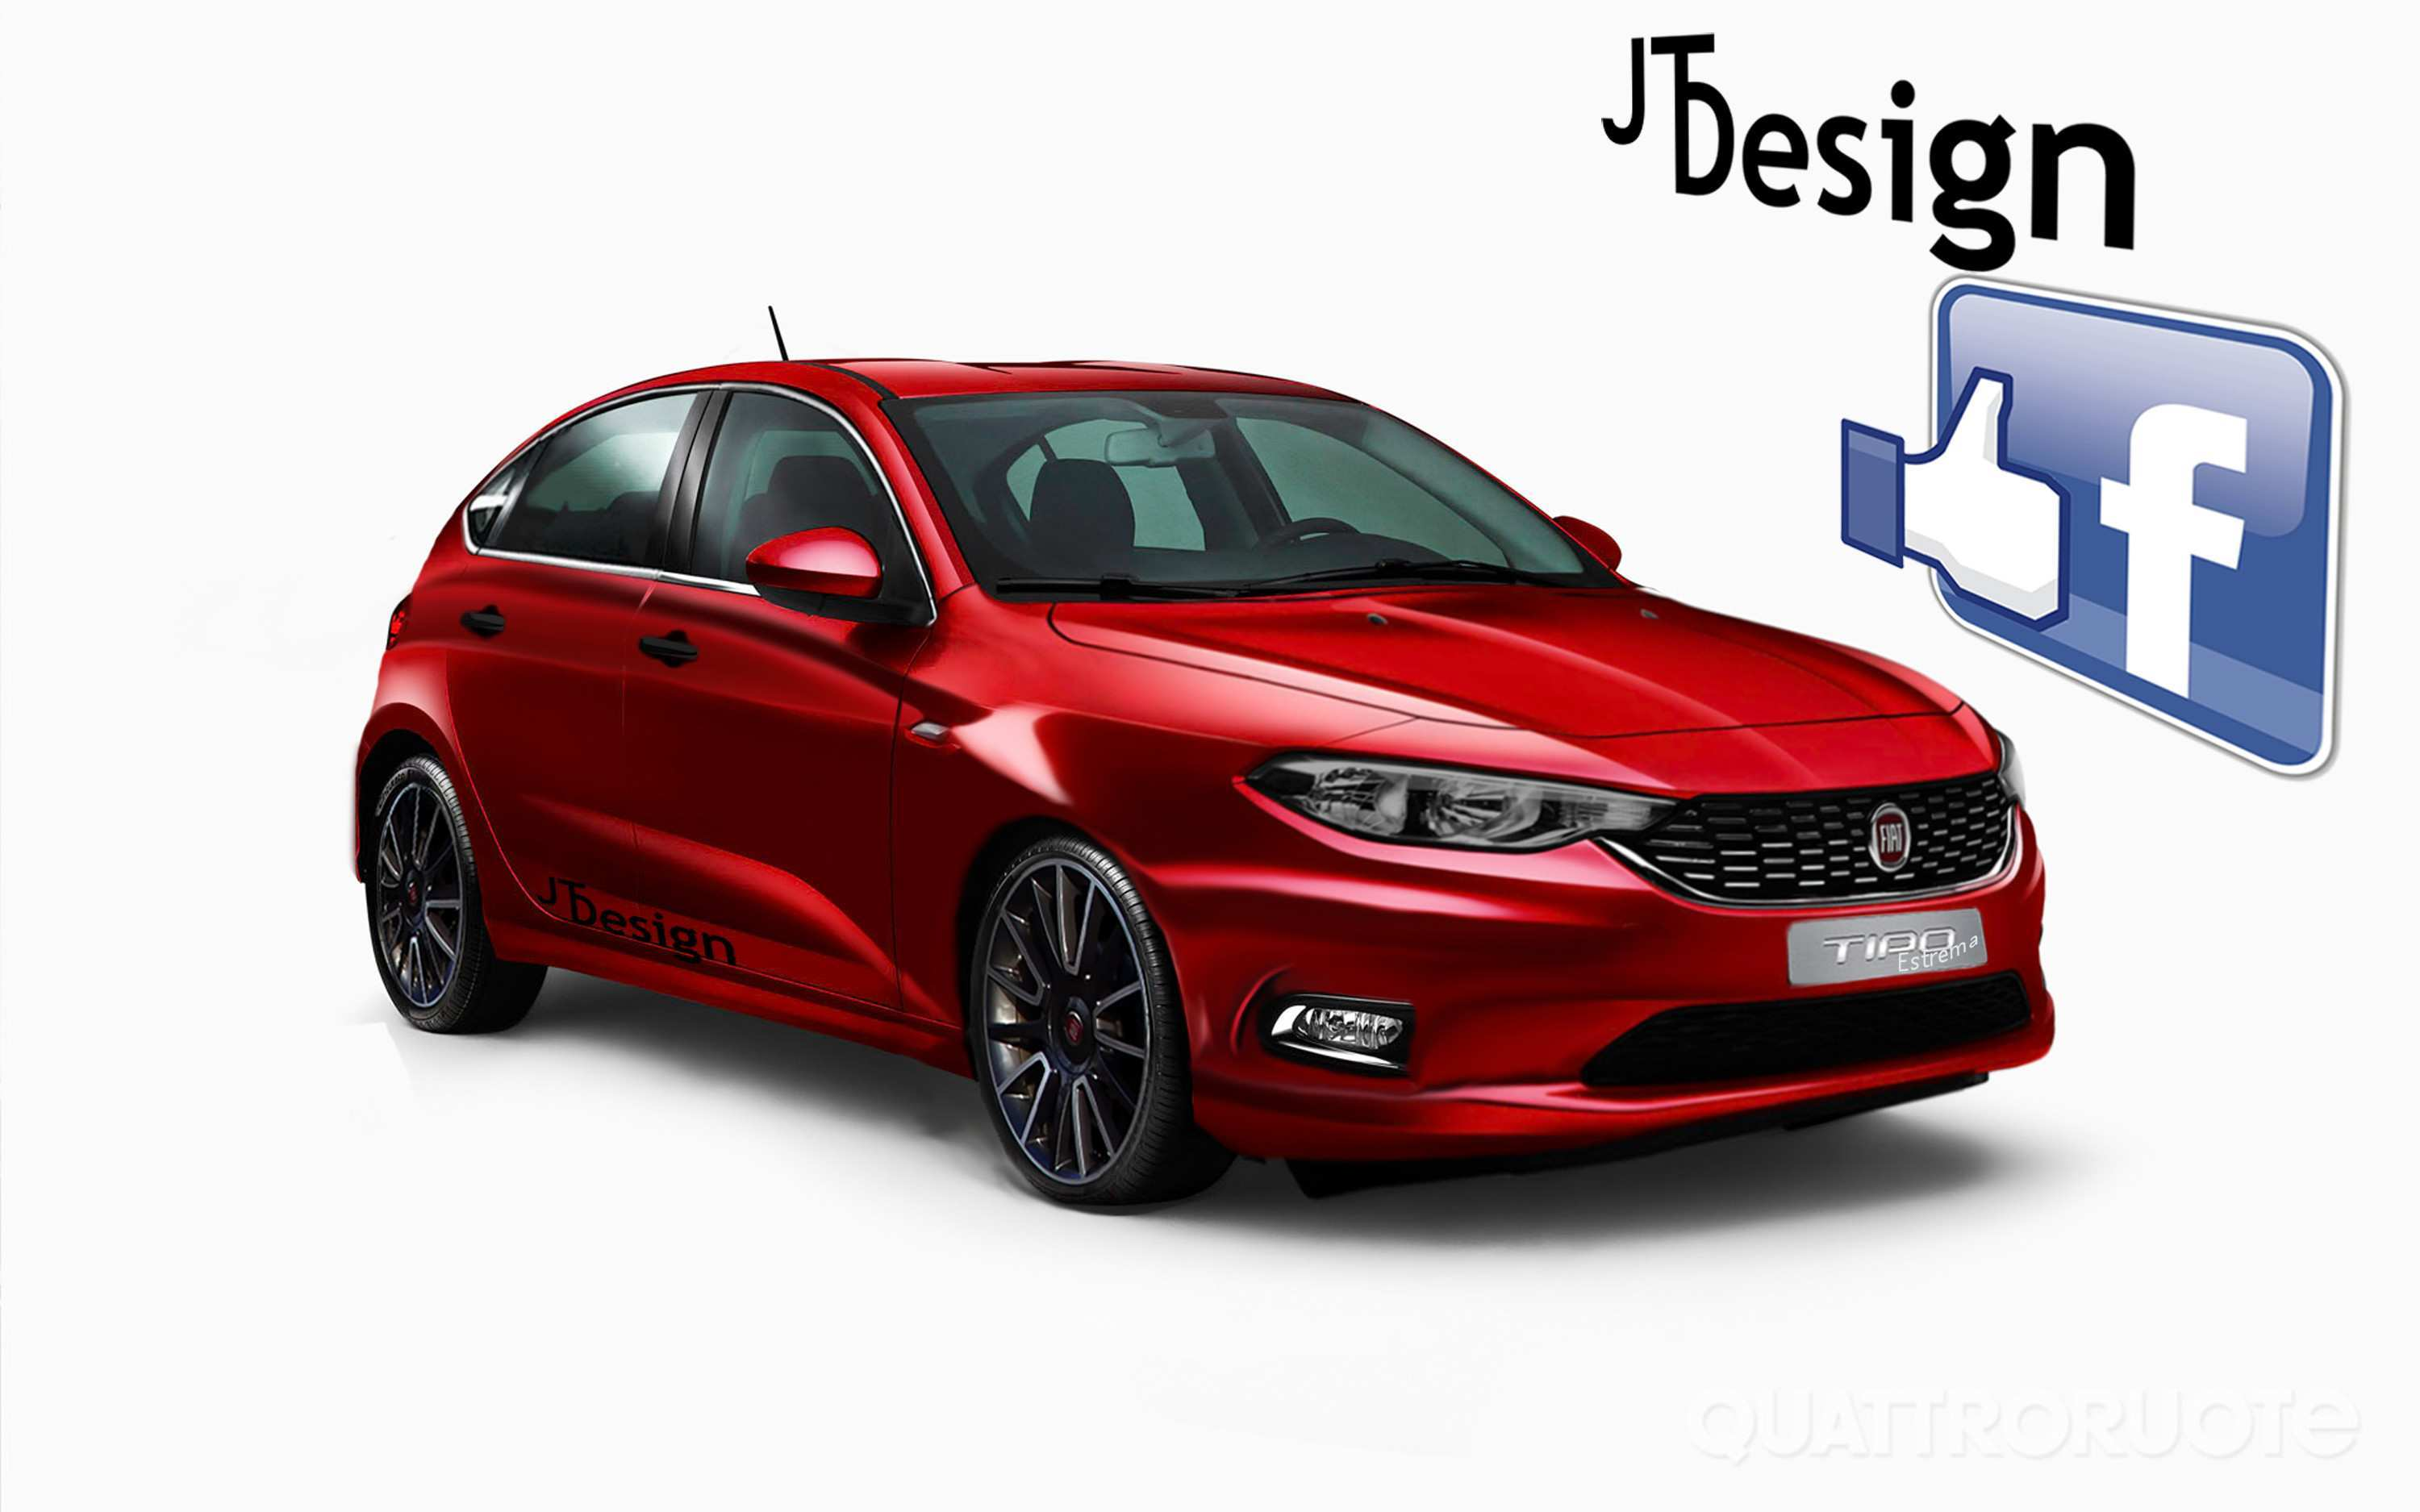 62 All New Fiat Tipo 2020 Redesign and Concept with Fiat Tipo 2020